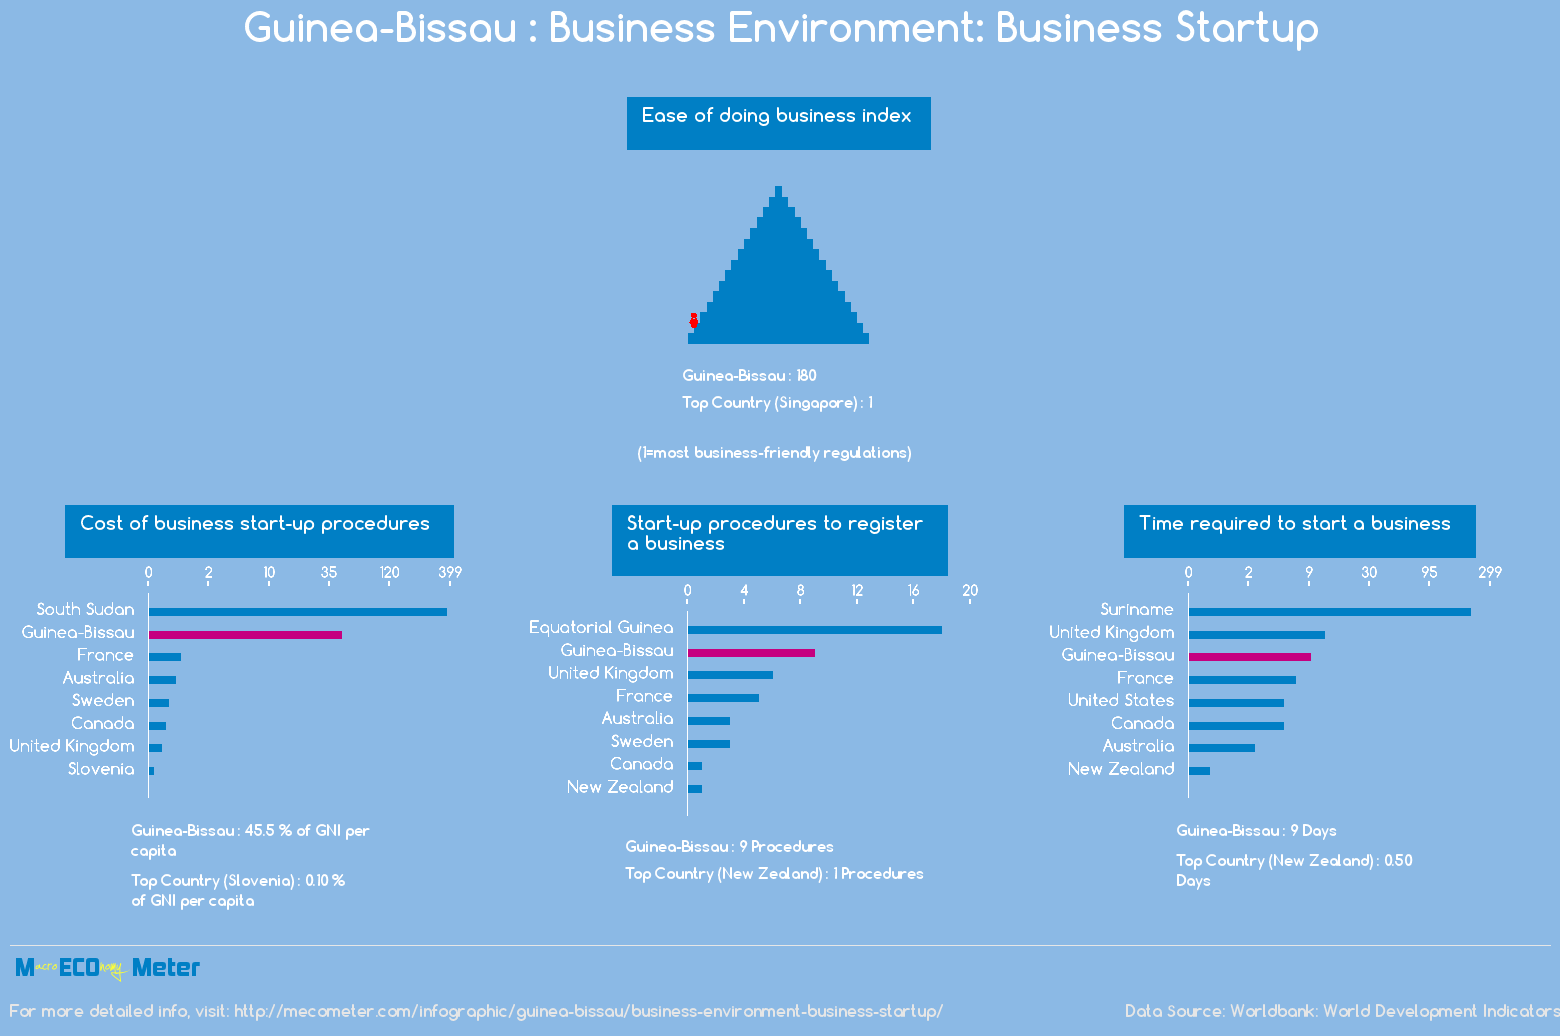 Guinea-Bissau : Business Environment: Business Startup